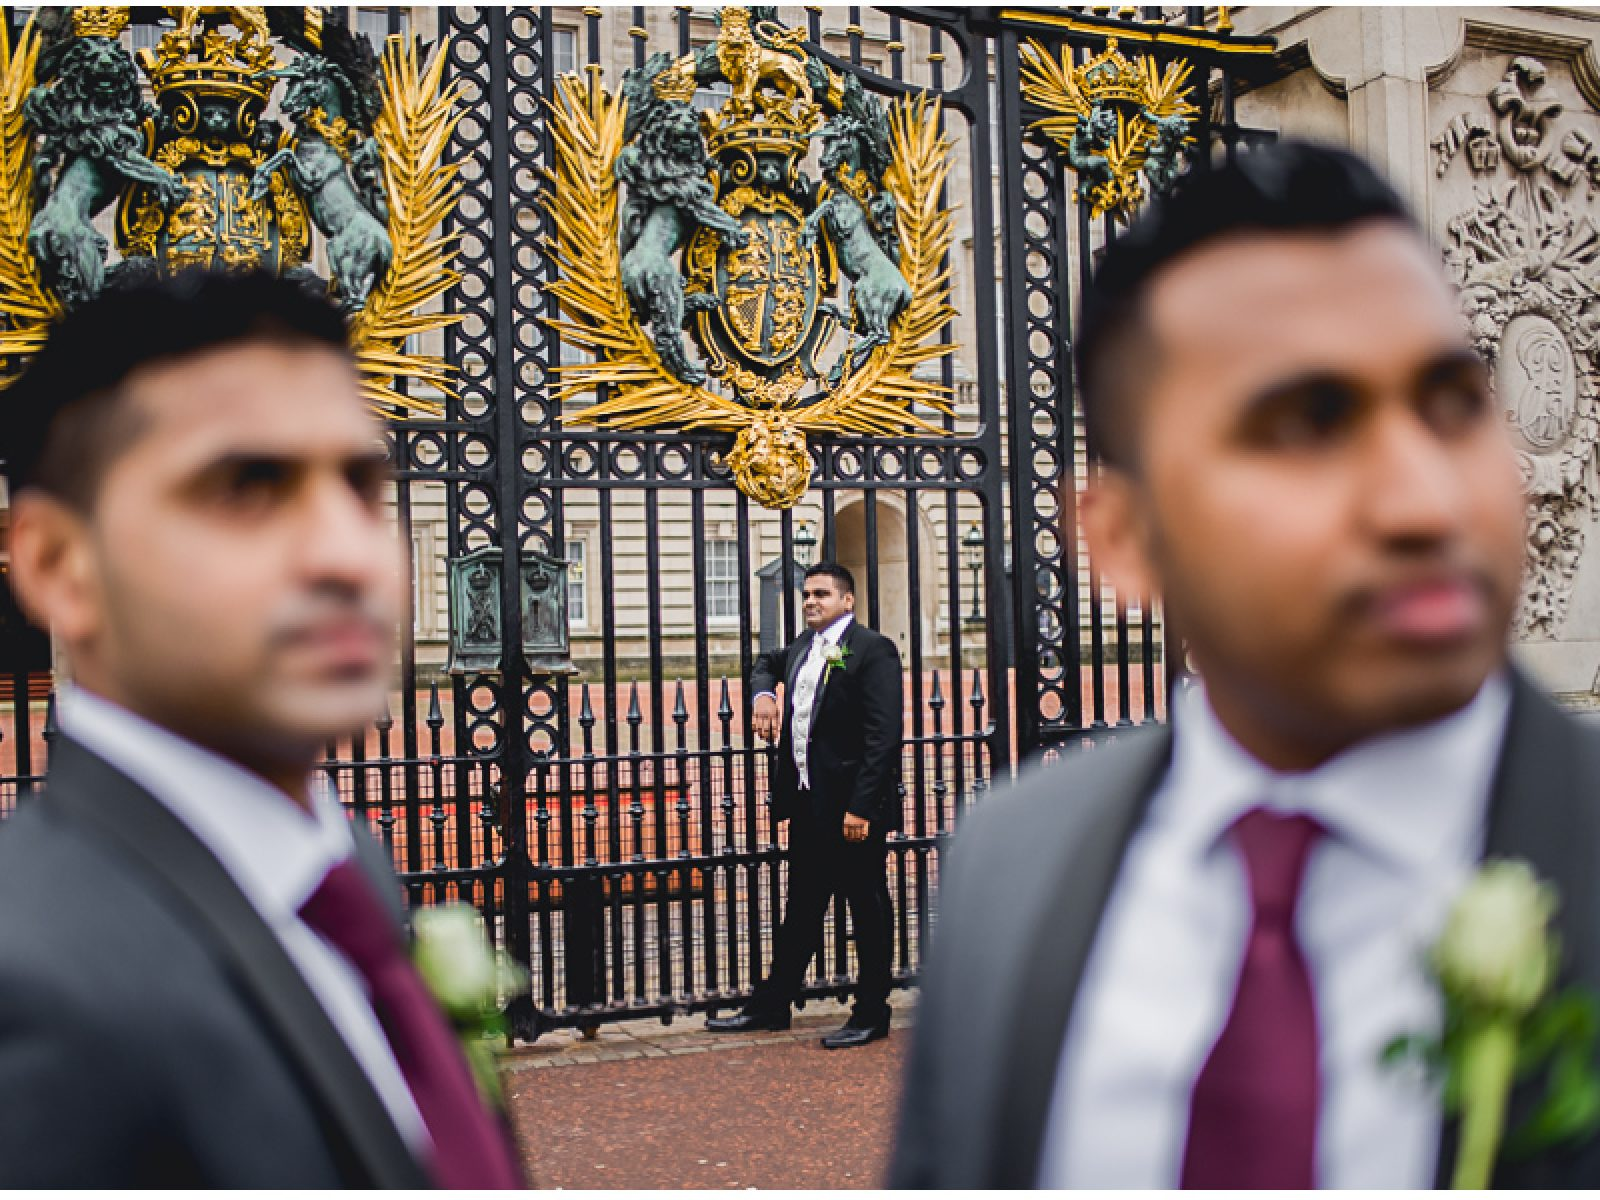 301 1600x1200 - Darshani and Anthony - wedding photographer in London